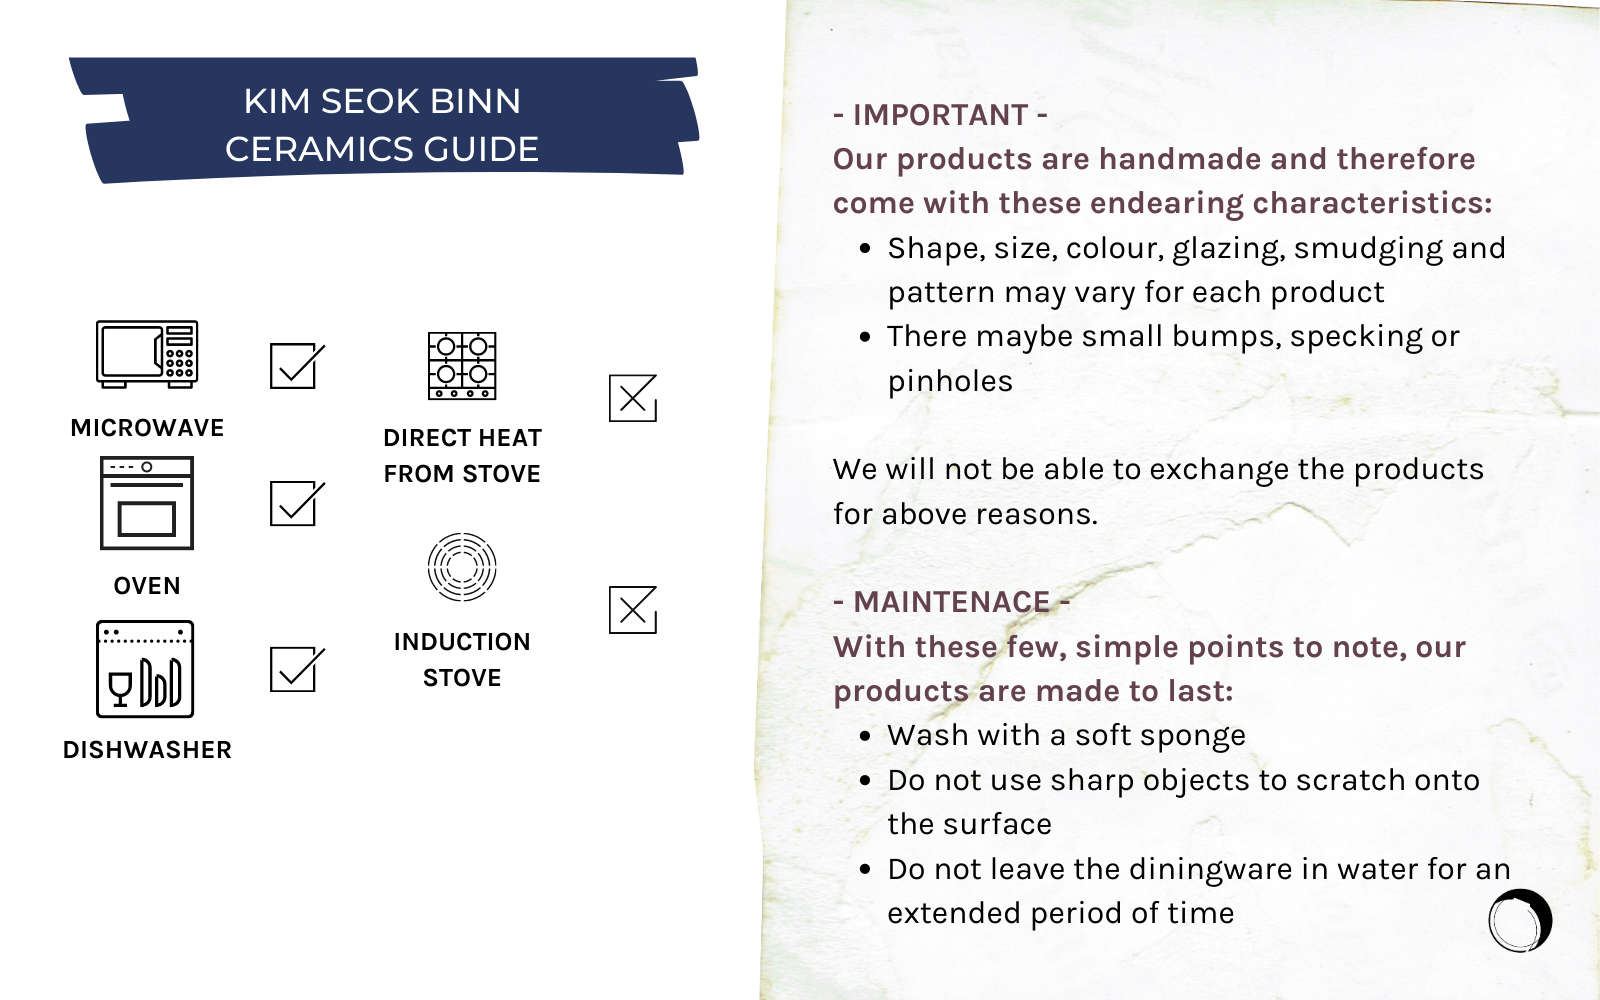 Kim Seok Binn Ceramics Product Guide